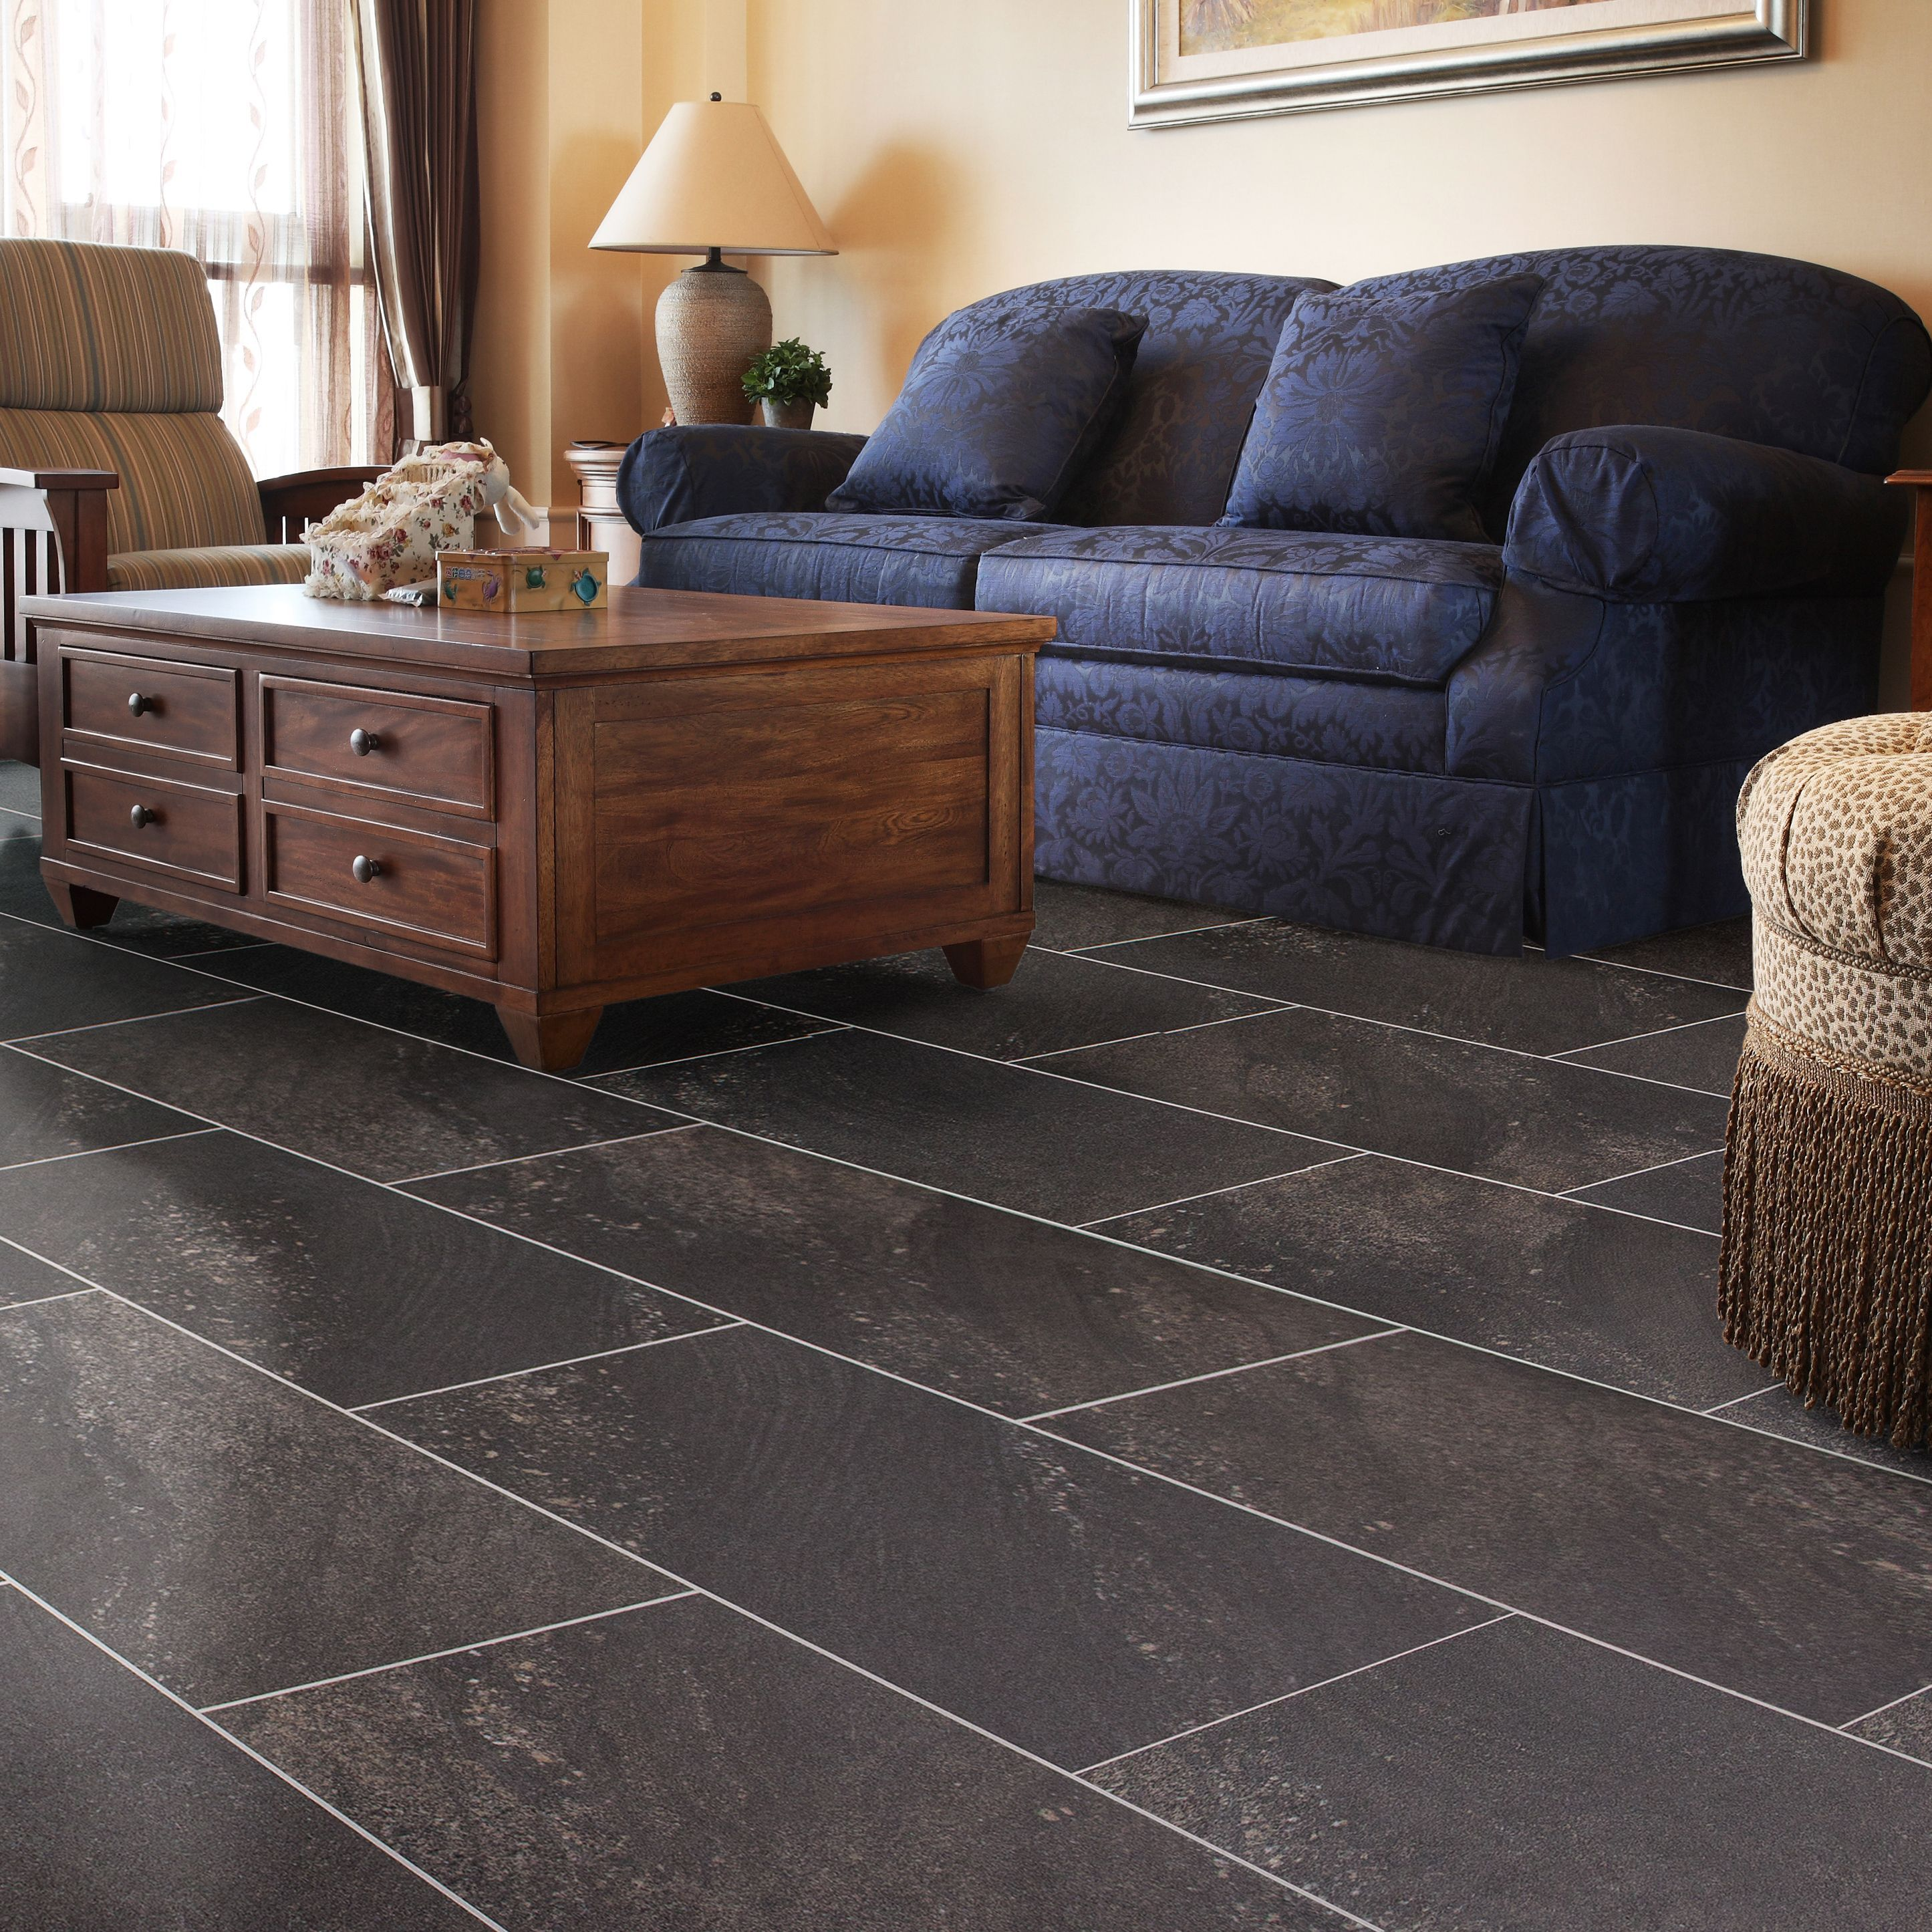 dark grey natural stone effect waterproof luxury vinyl click